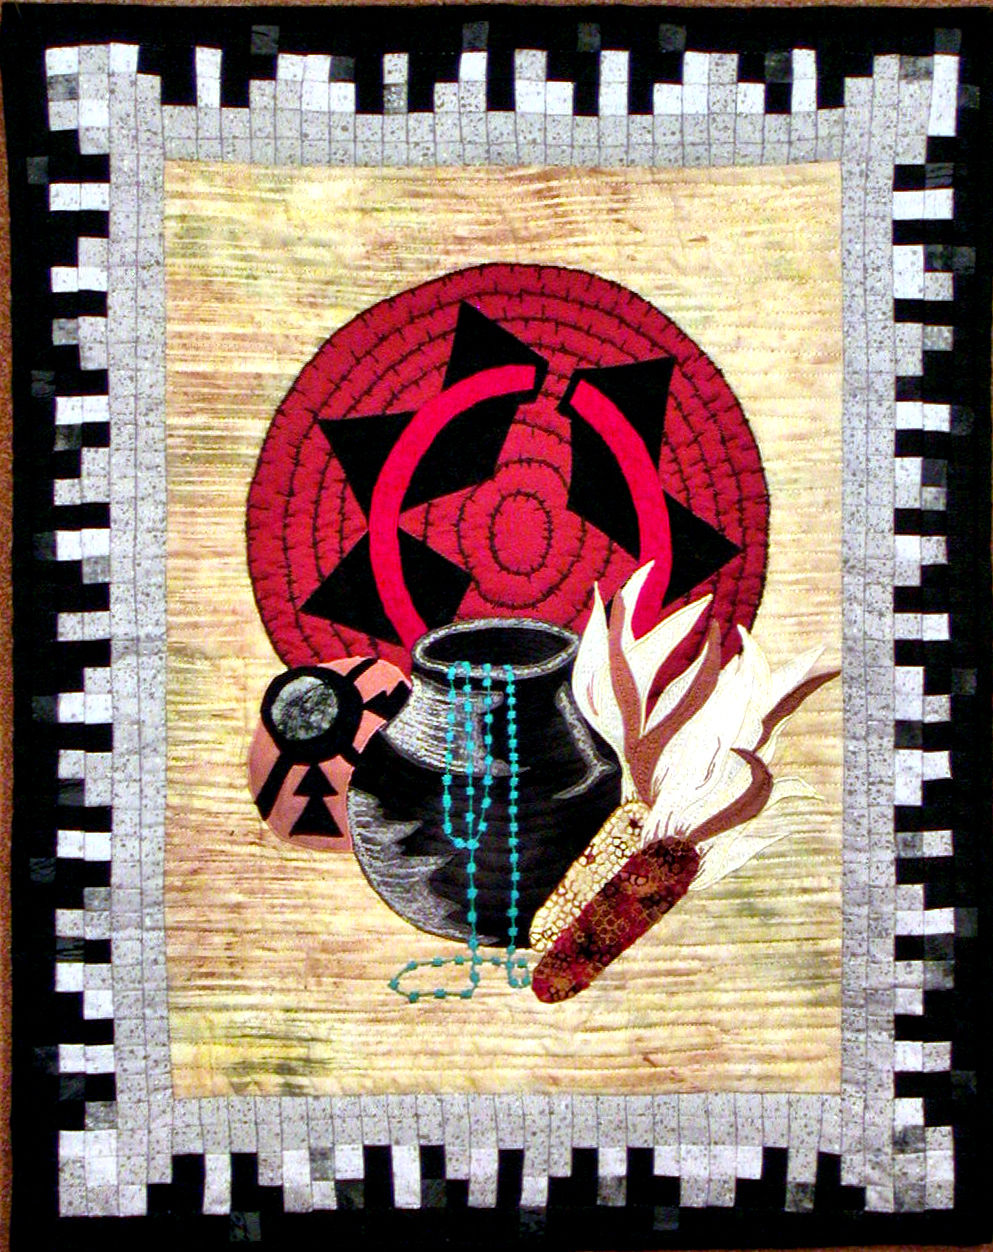 navajo still life small is a miniature fiber art work showing images of indian life such as pottery and  dried corn and navajo basketry